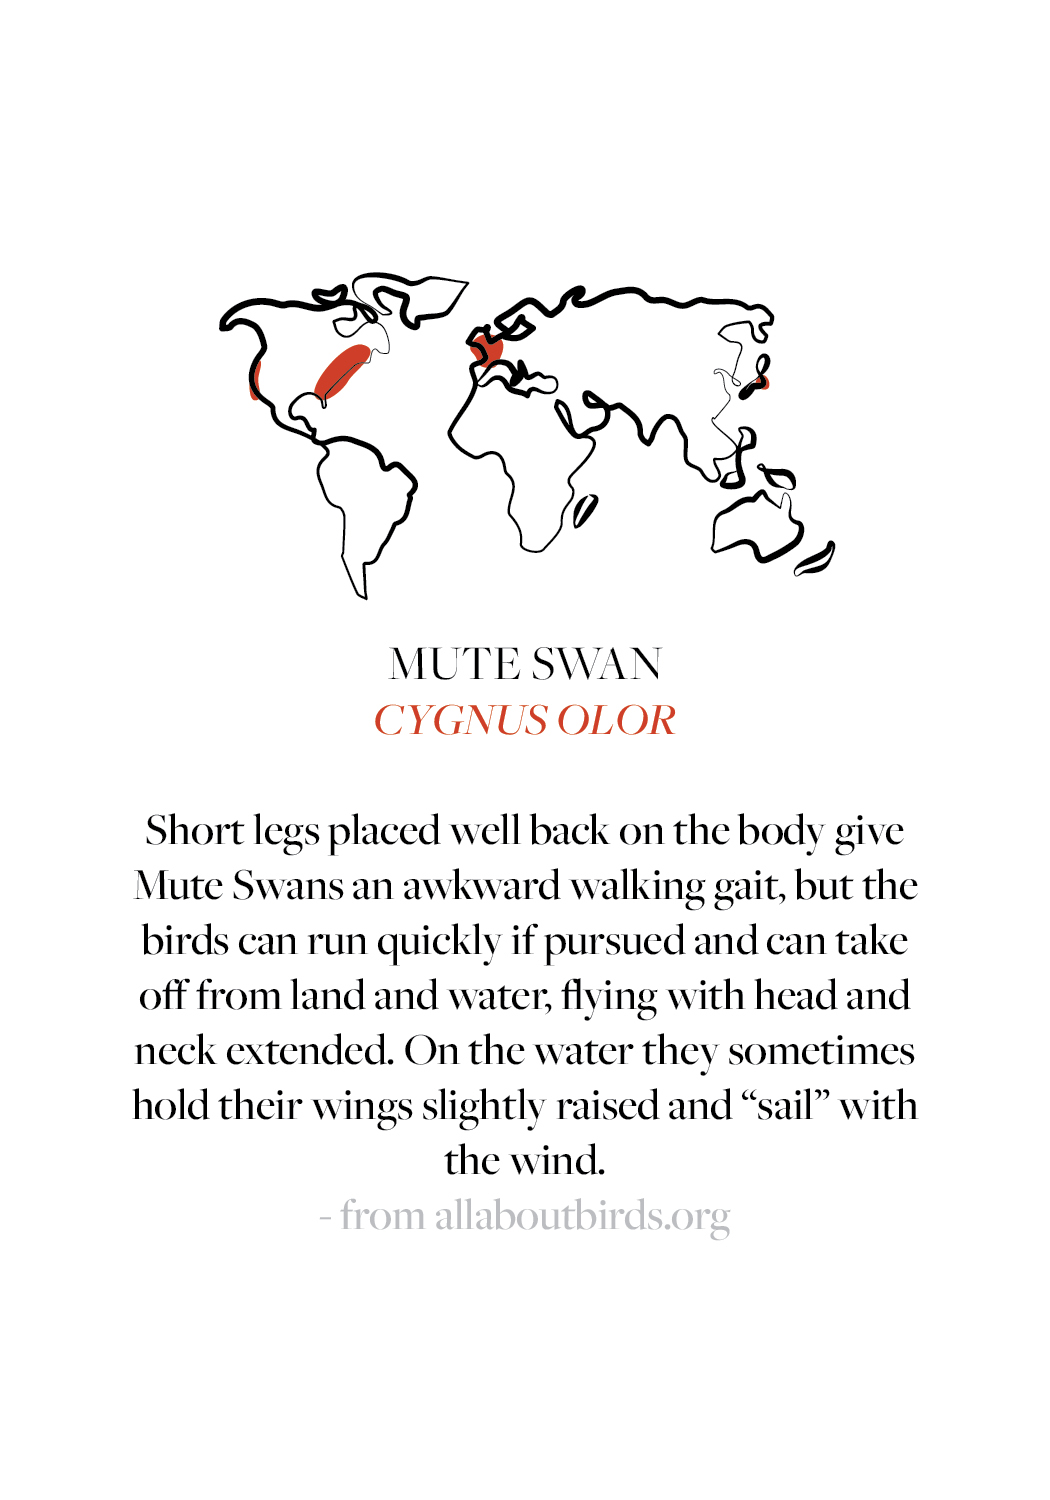 Mute Swan Fun Facts